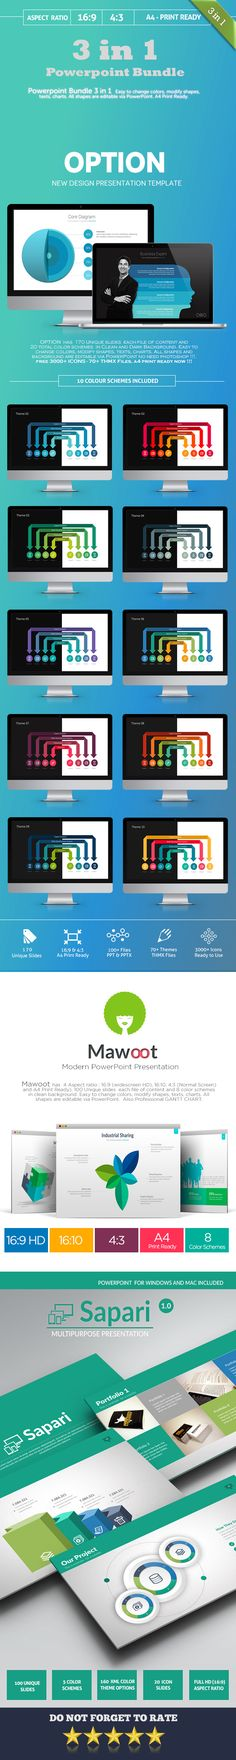 Amazing Business PowerPoint Presentation Template More - business presentation template